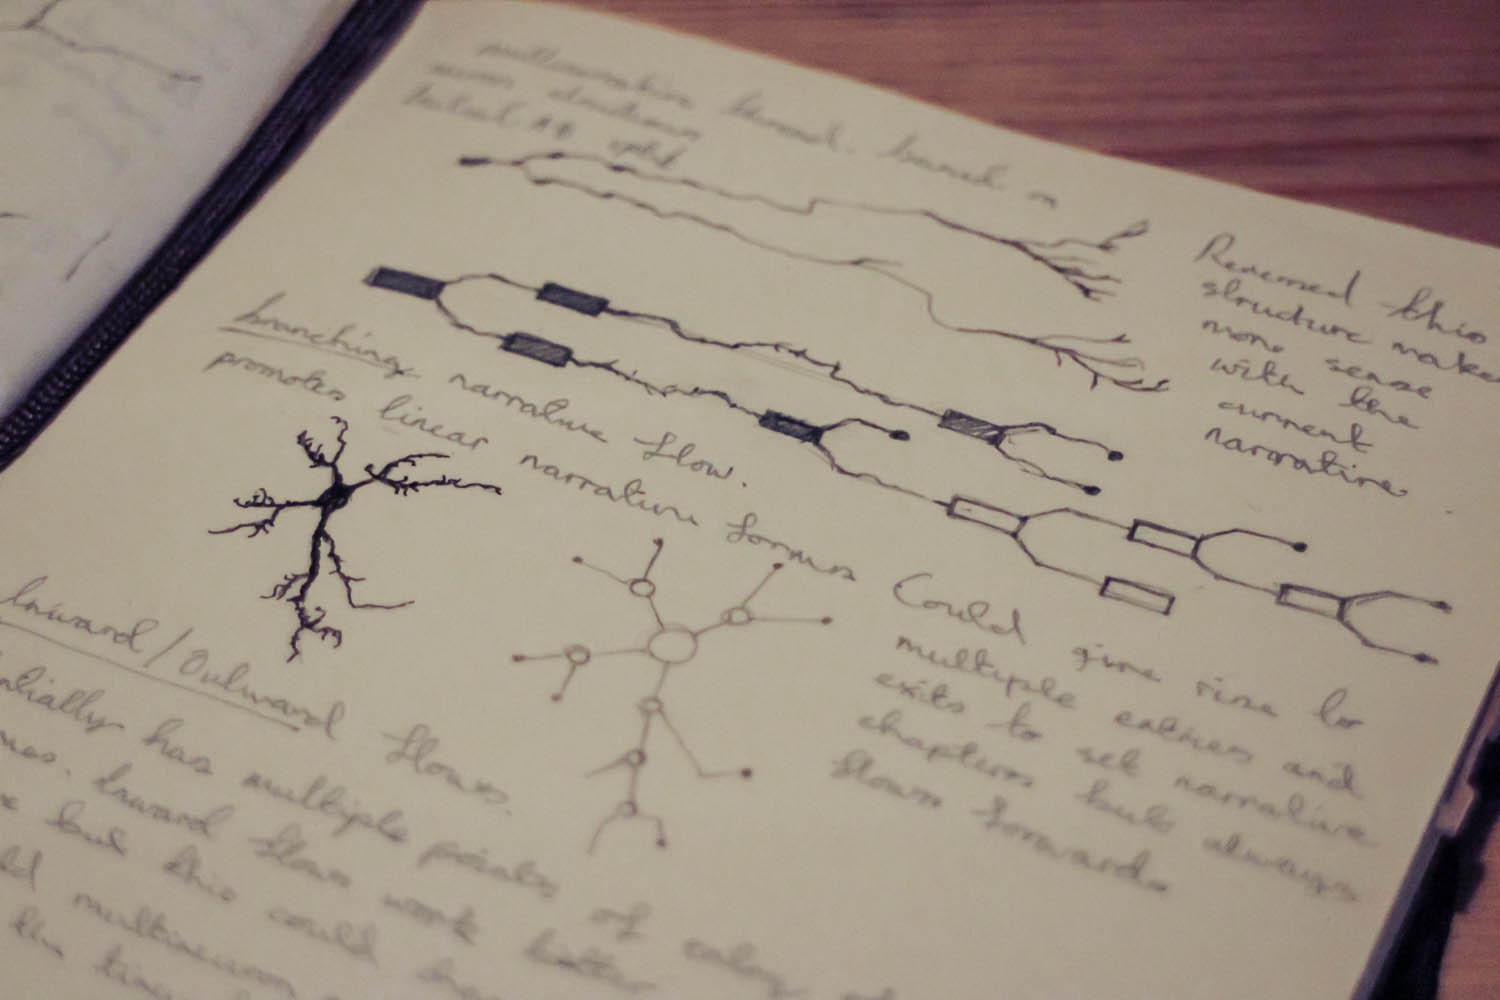 aaron-bradbury-neuron-sketch-ramon-y-cajal_narrative